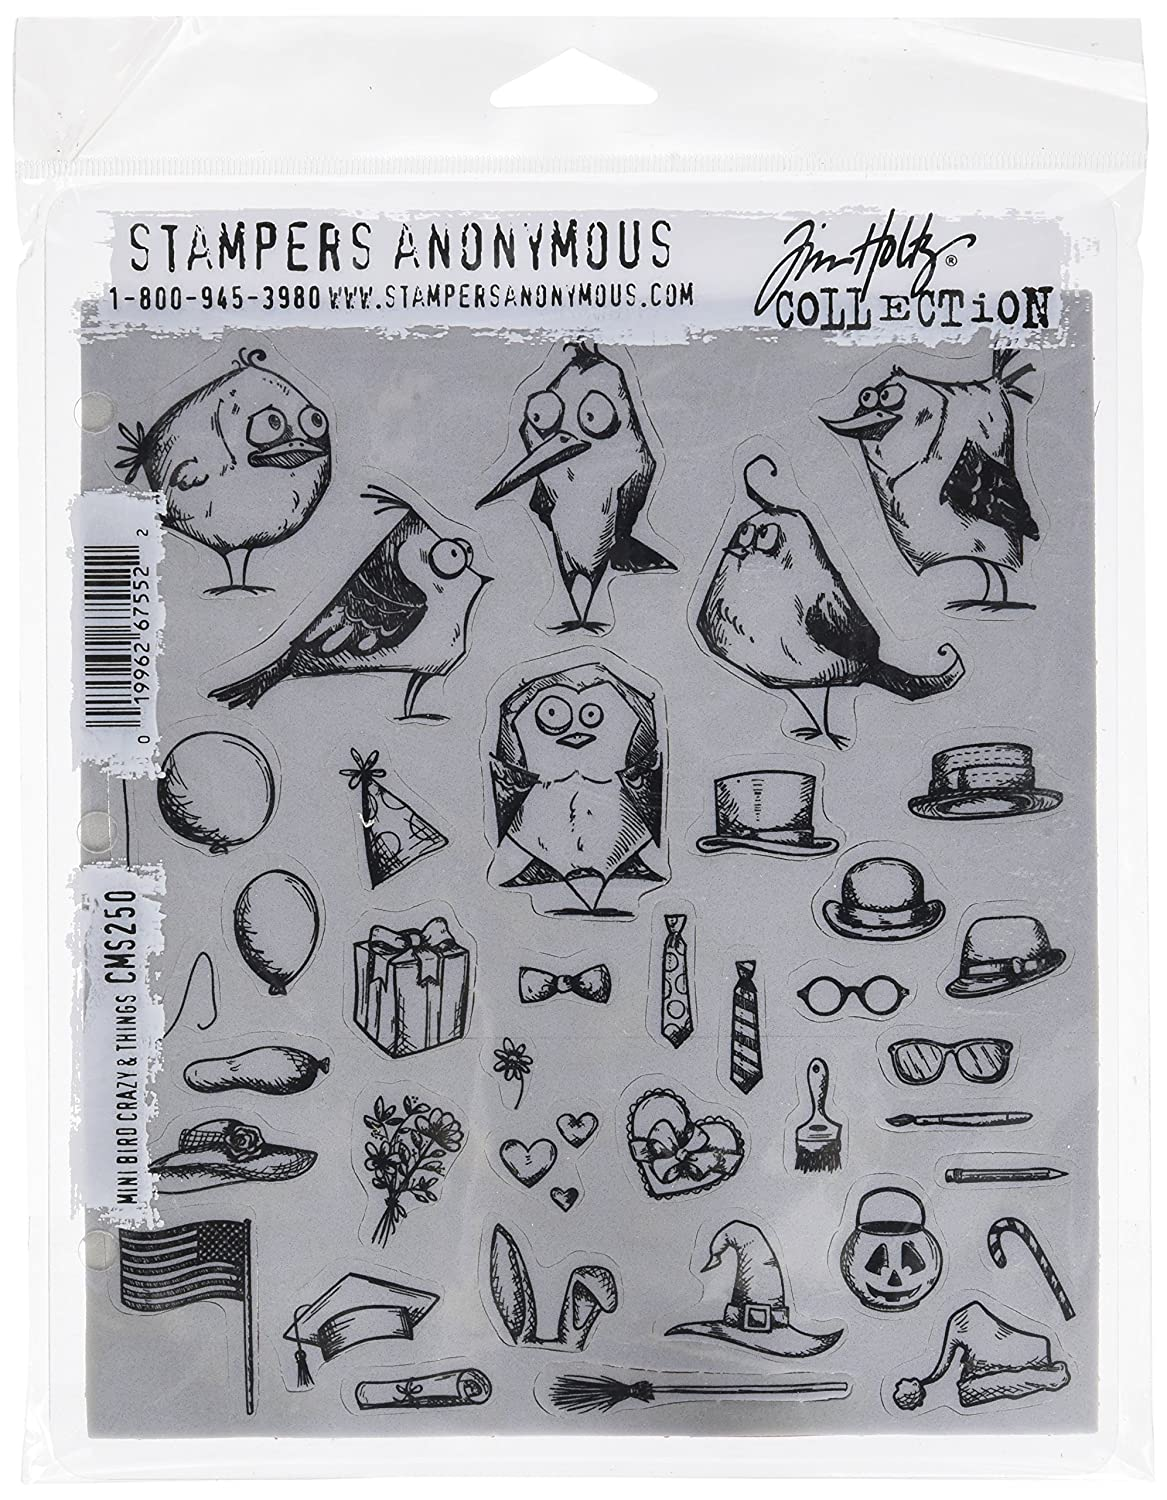 7 by 8.5 Stampers Anonymous CMS250 Mini Bird Crazy /& Things Tim Holtz Cling Stamps Clear